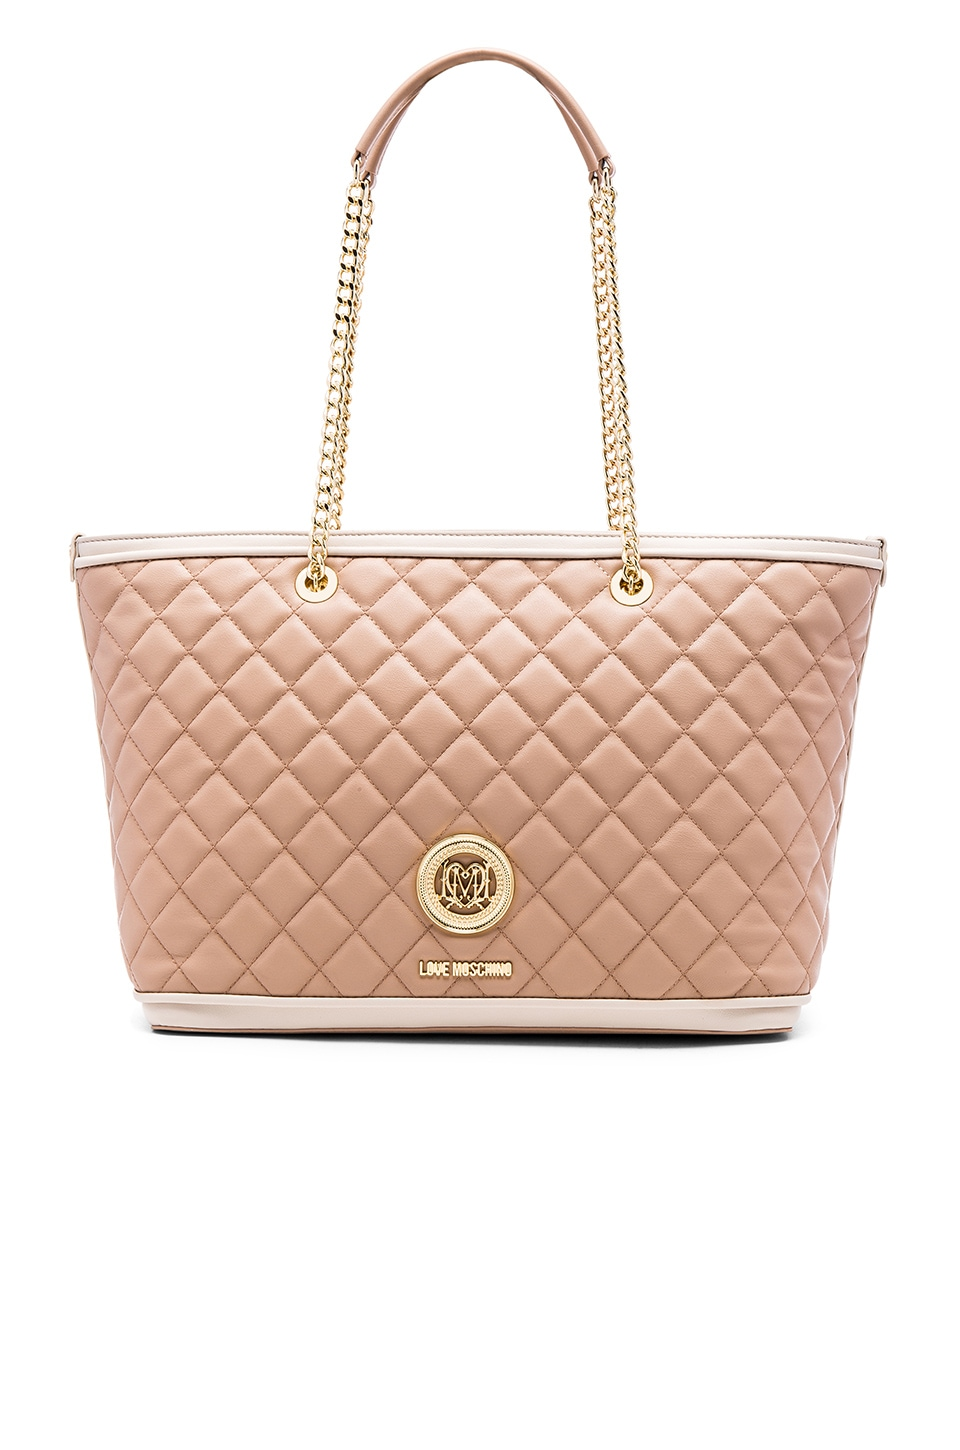 Love Moschino Superquilted Tote in Pink & Ivory